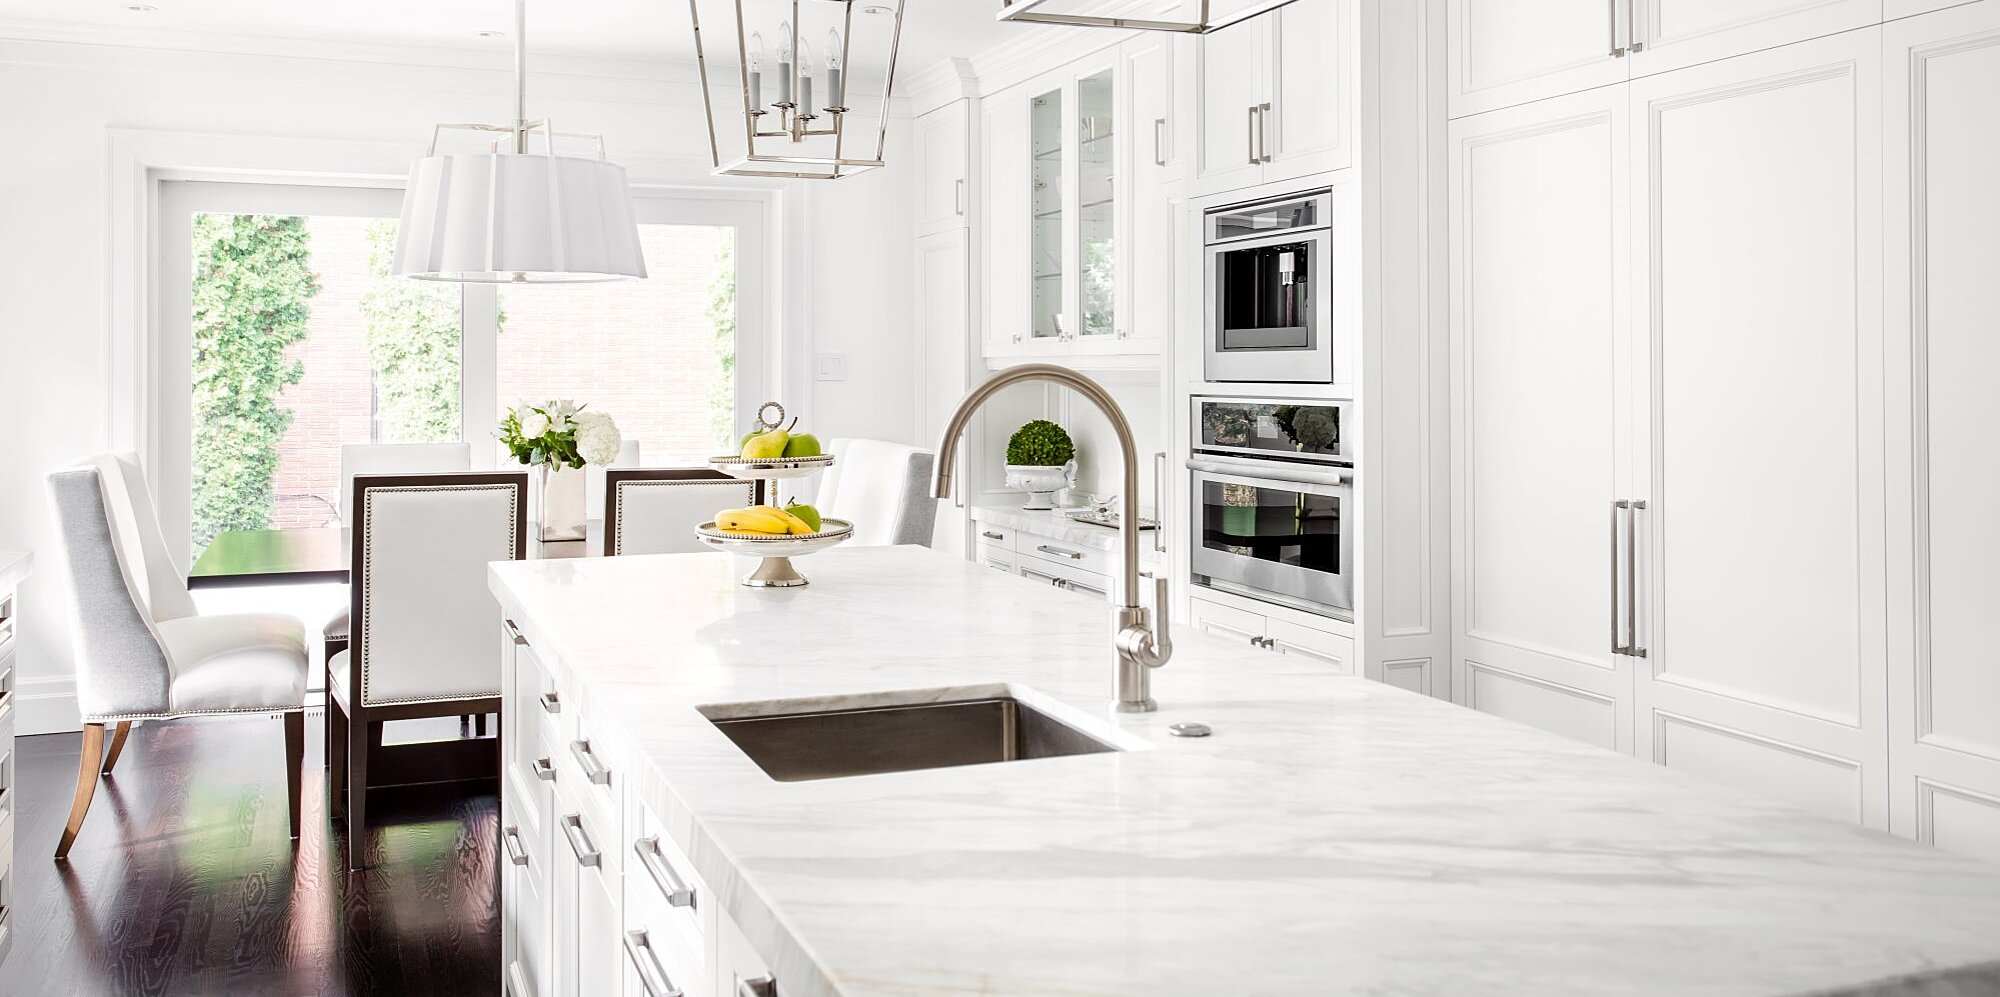 How To Clean Marble Video And Remove Stubborn Stains Real Simple